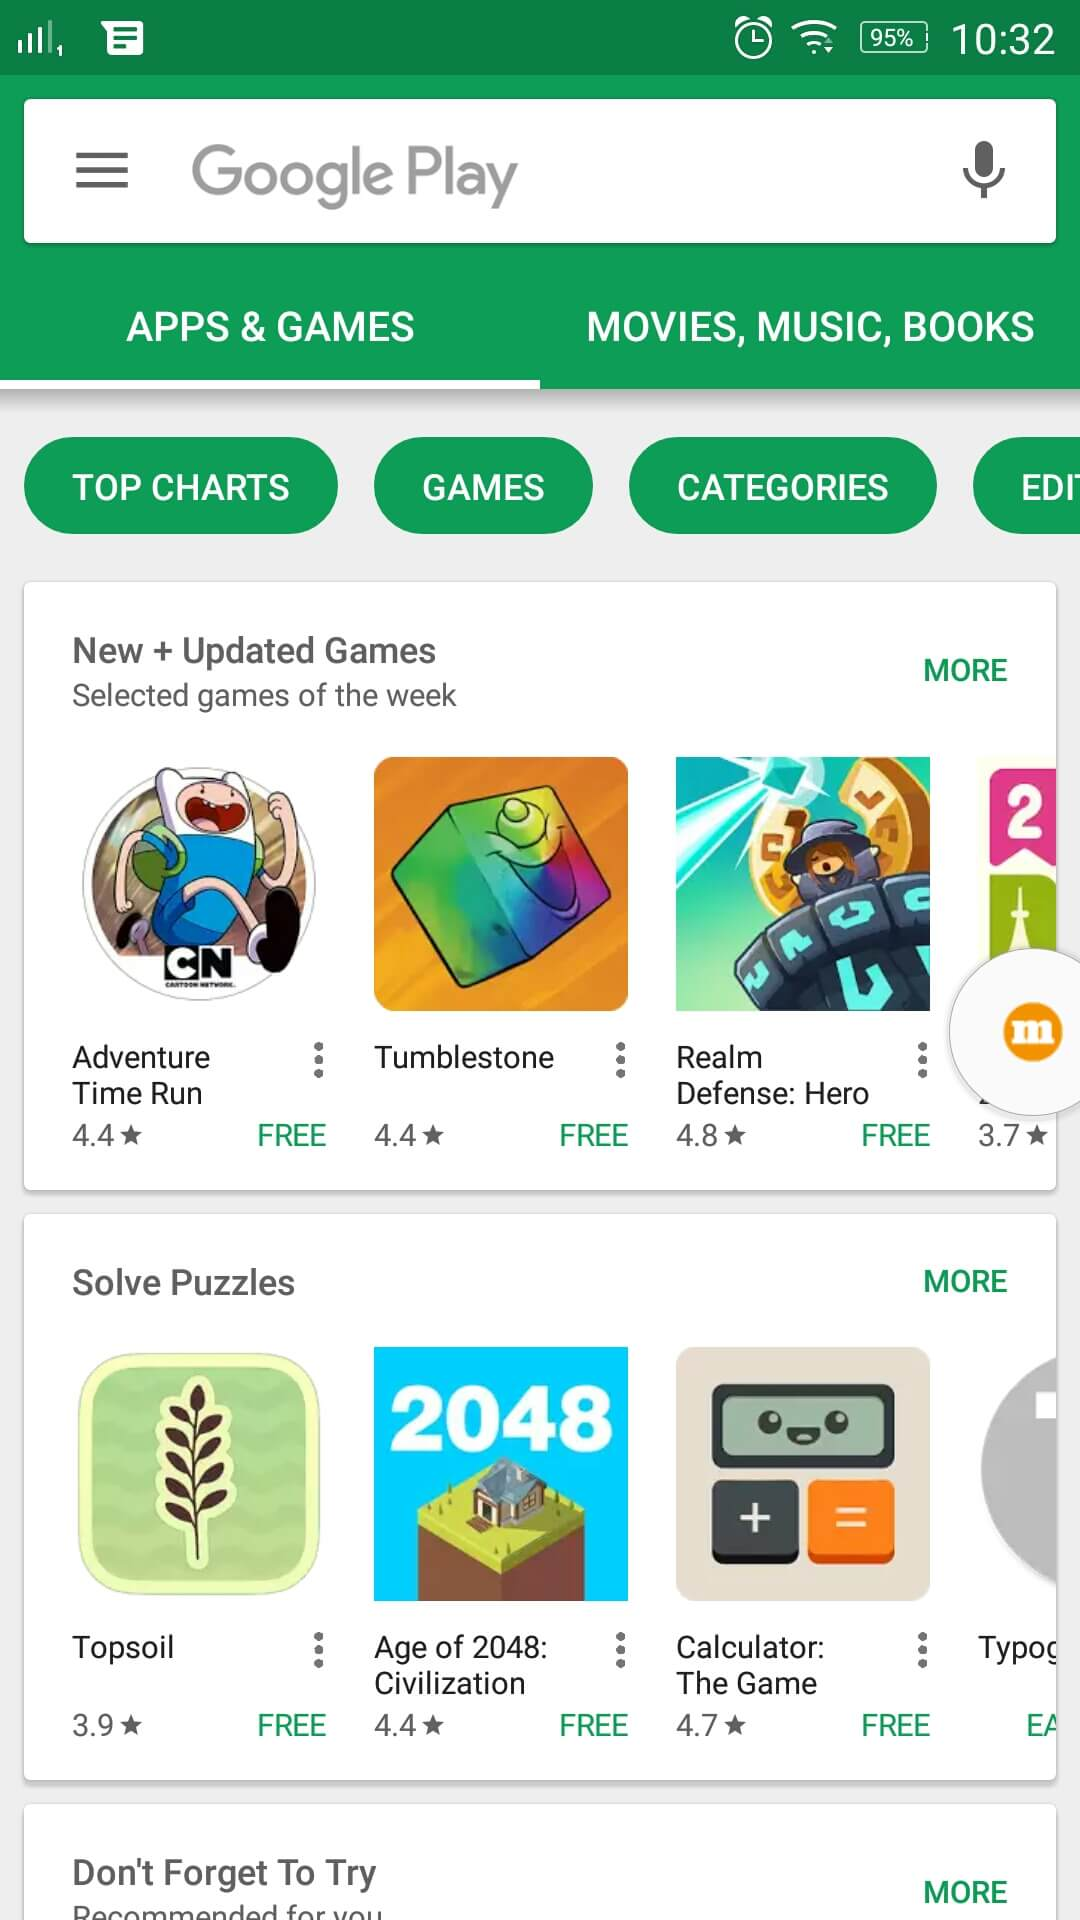 The Play Store